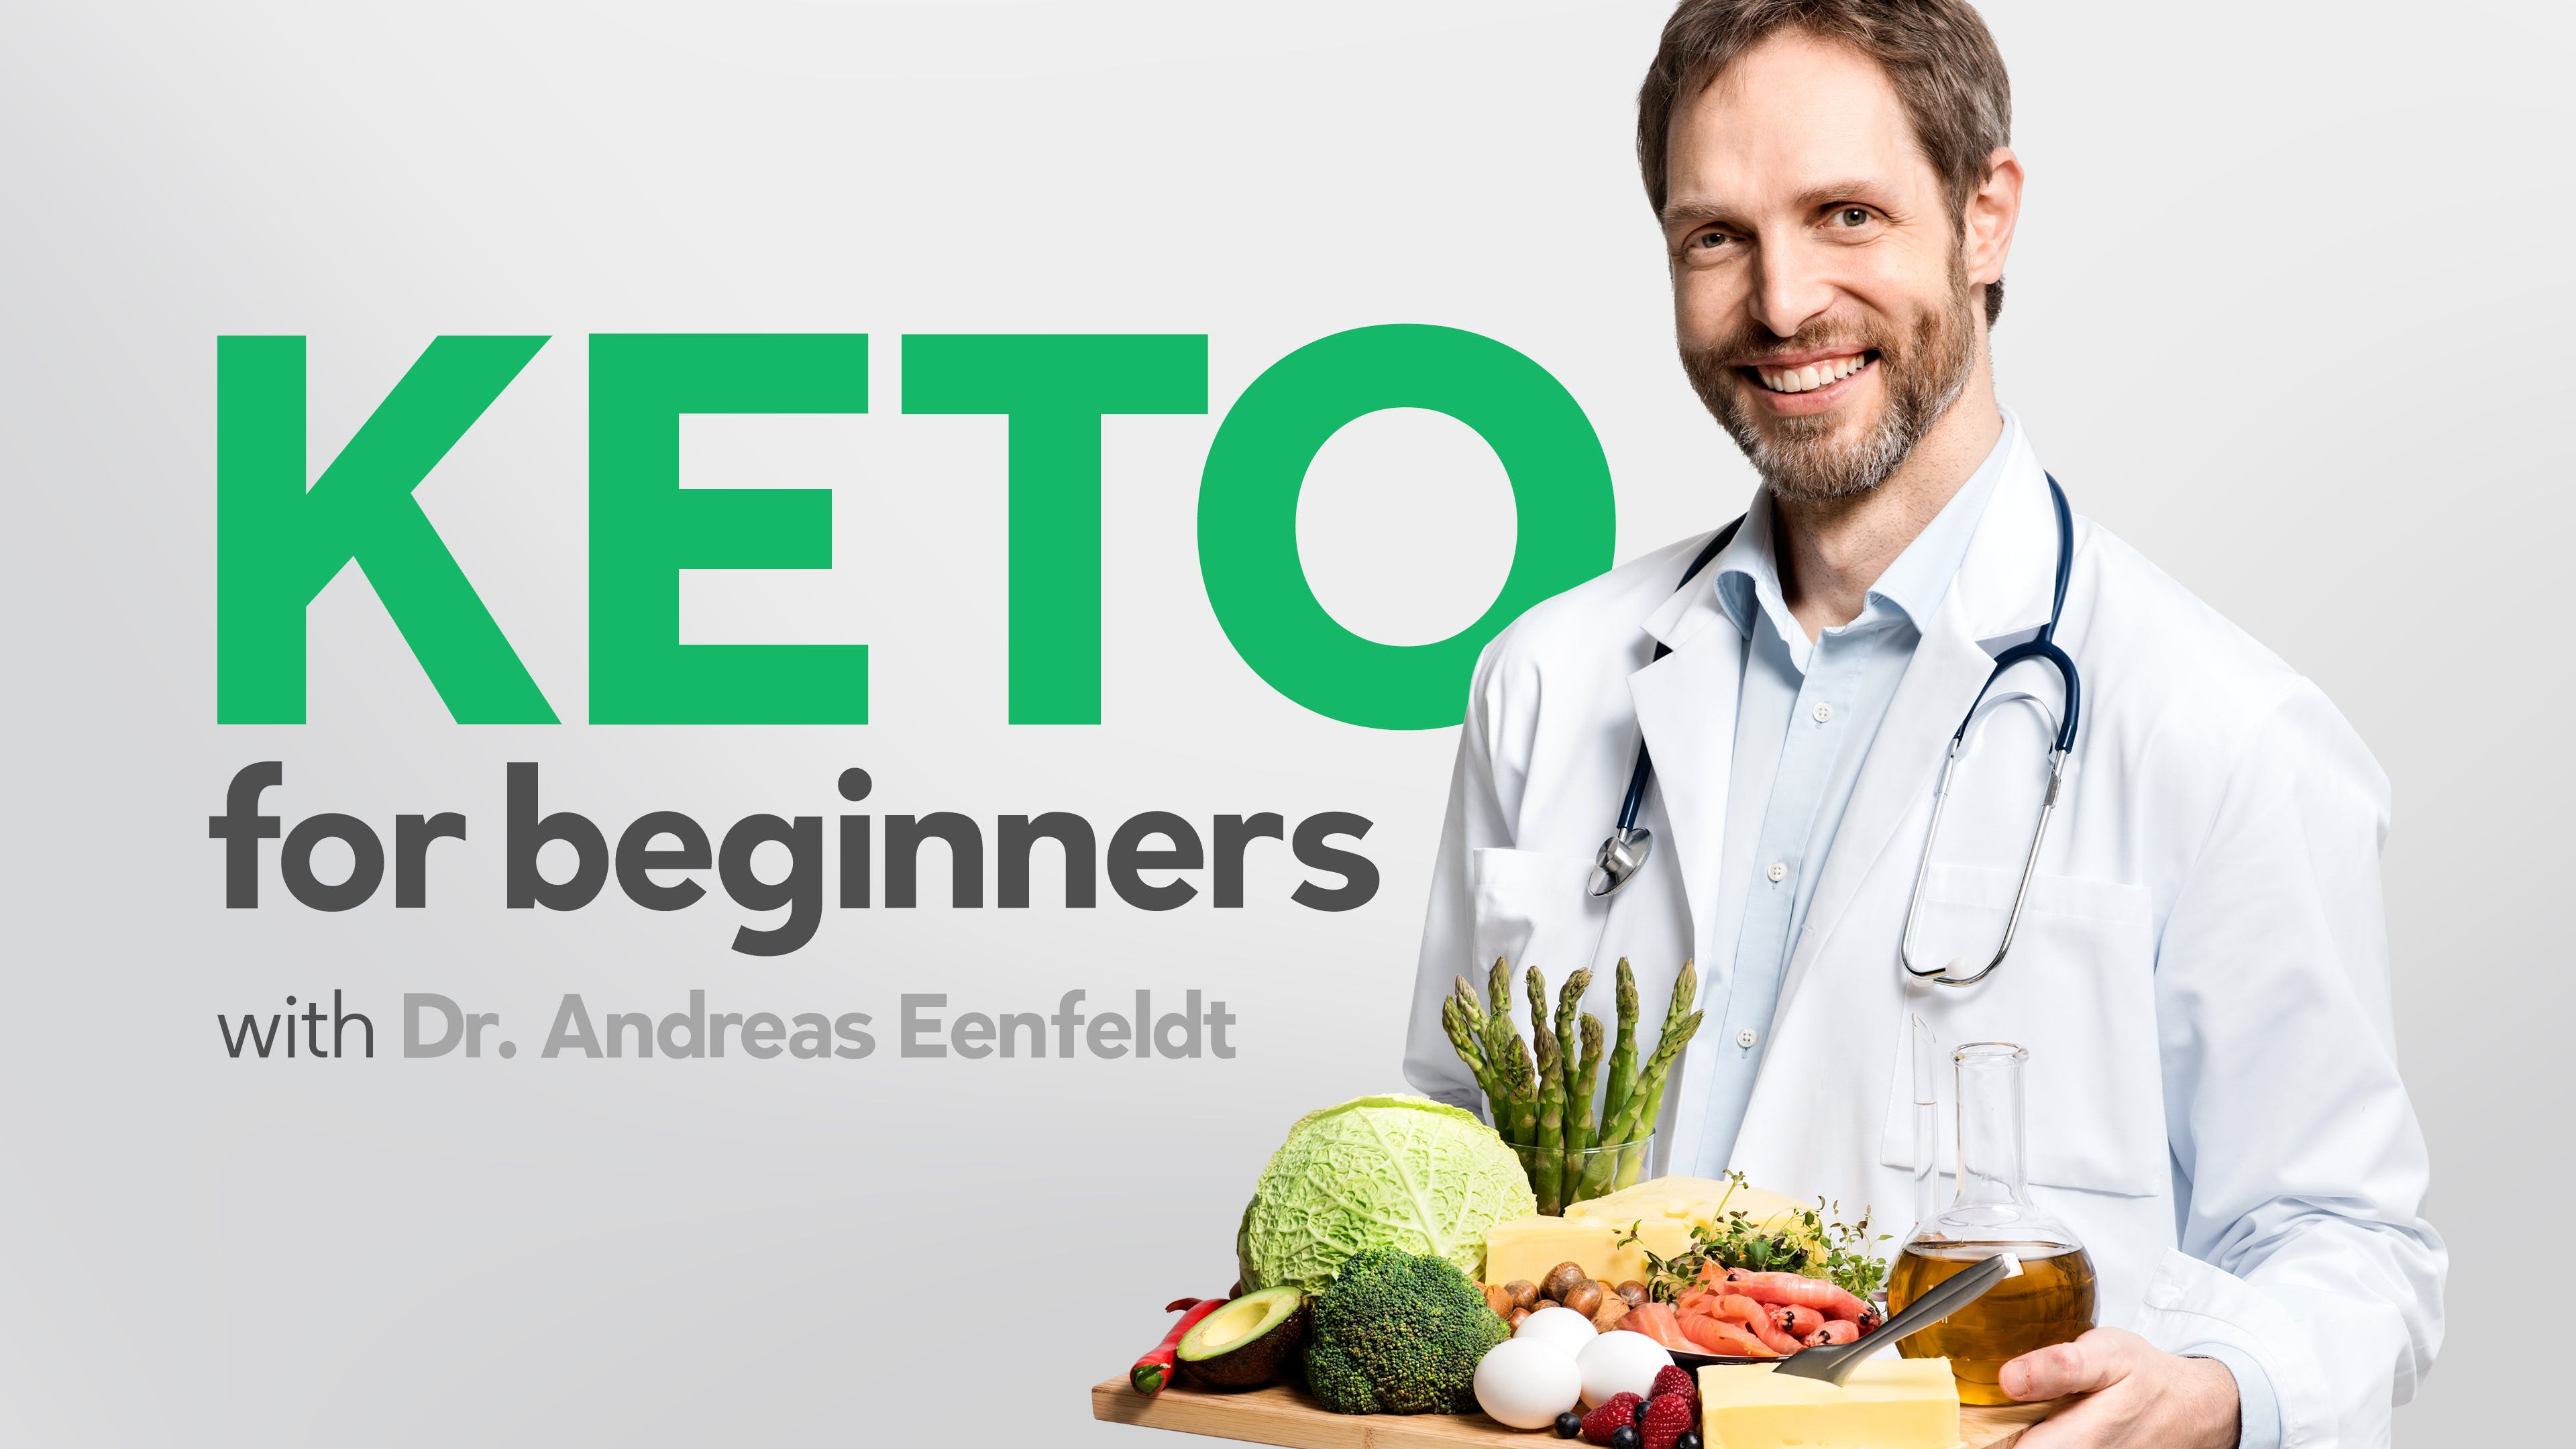 Keto course with Dr. Andreas Eenfeldt